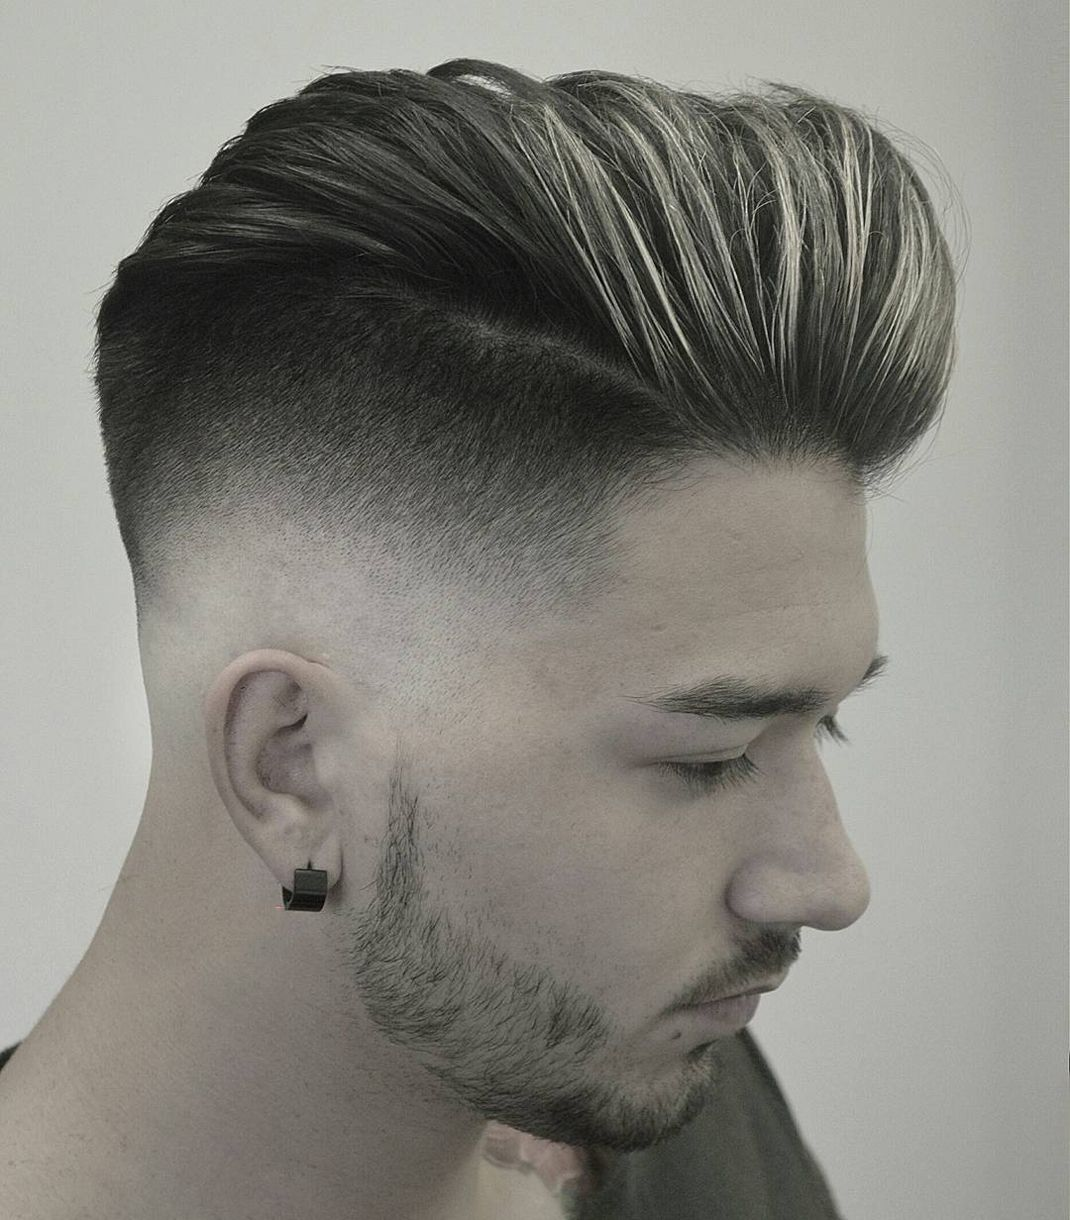 18 medium length pompadour hairstyle for men 2018 | mens hair cut